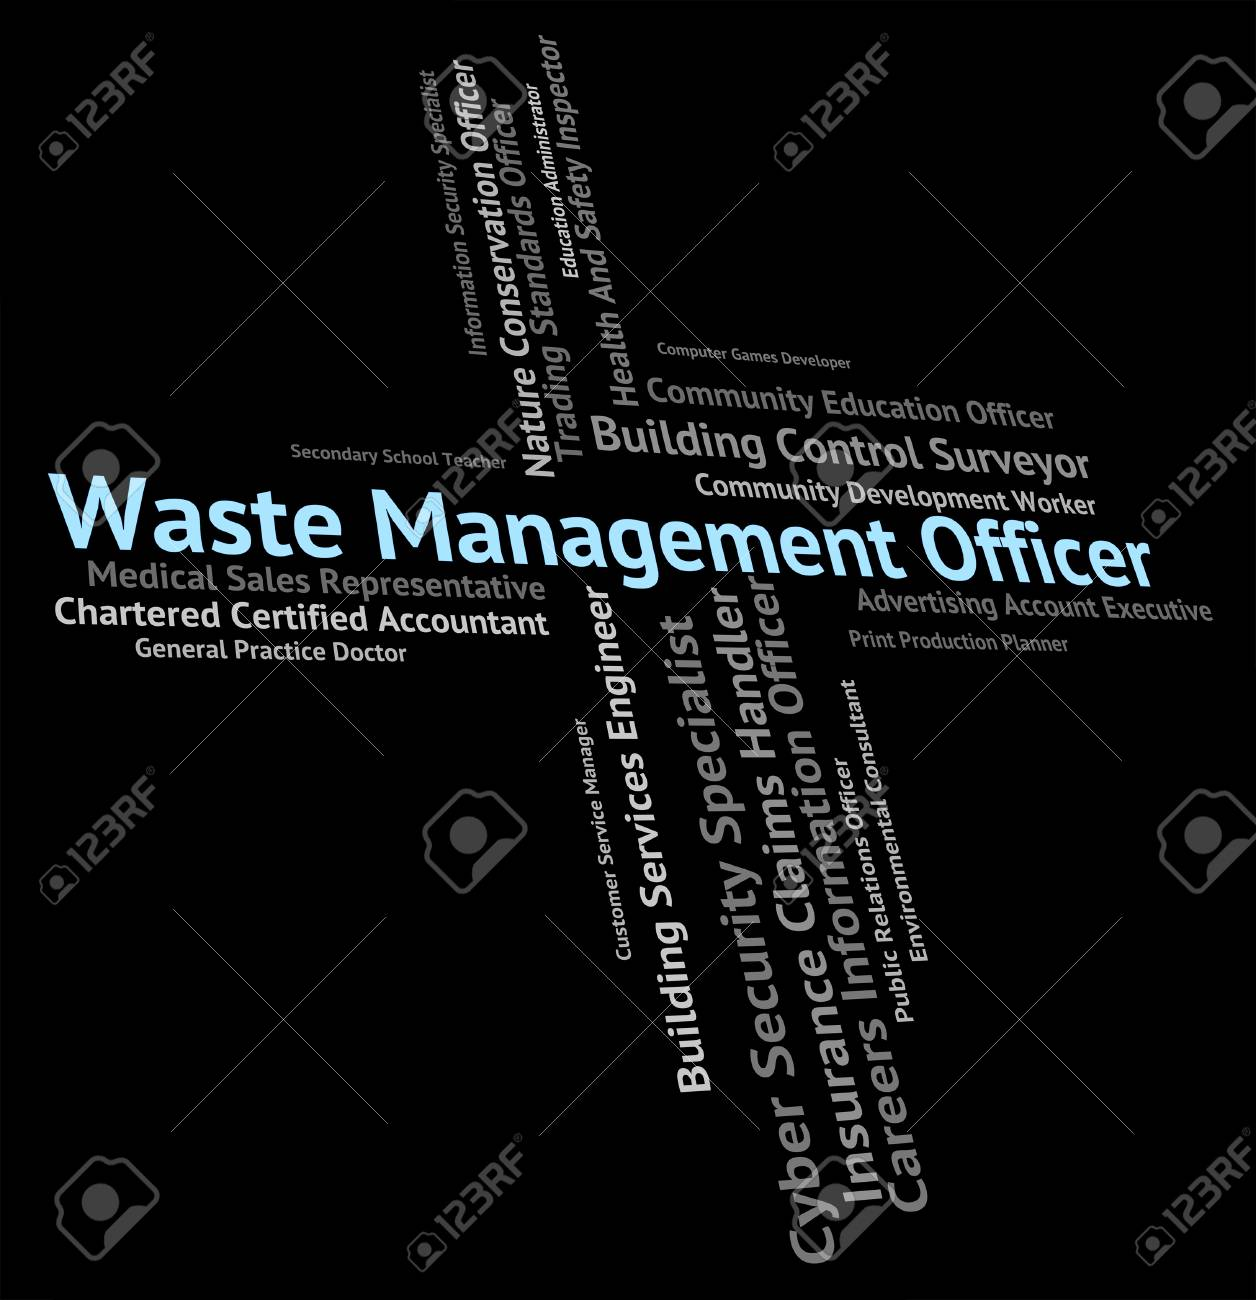 Waste Management Officer Meaning Get Rid And Processing